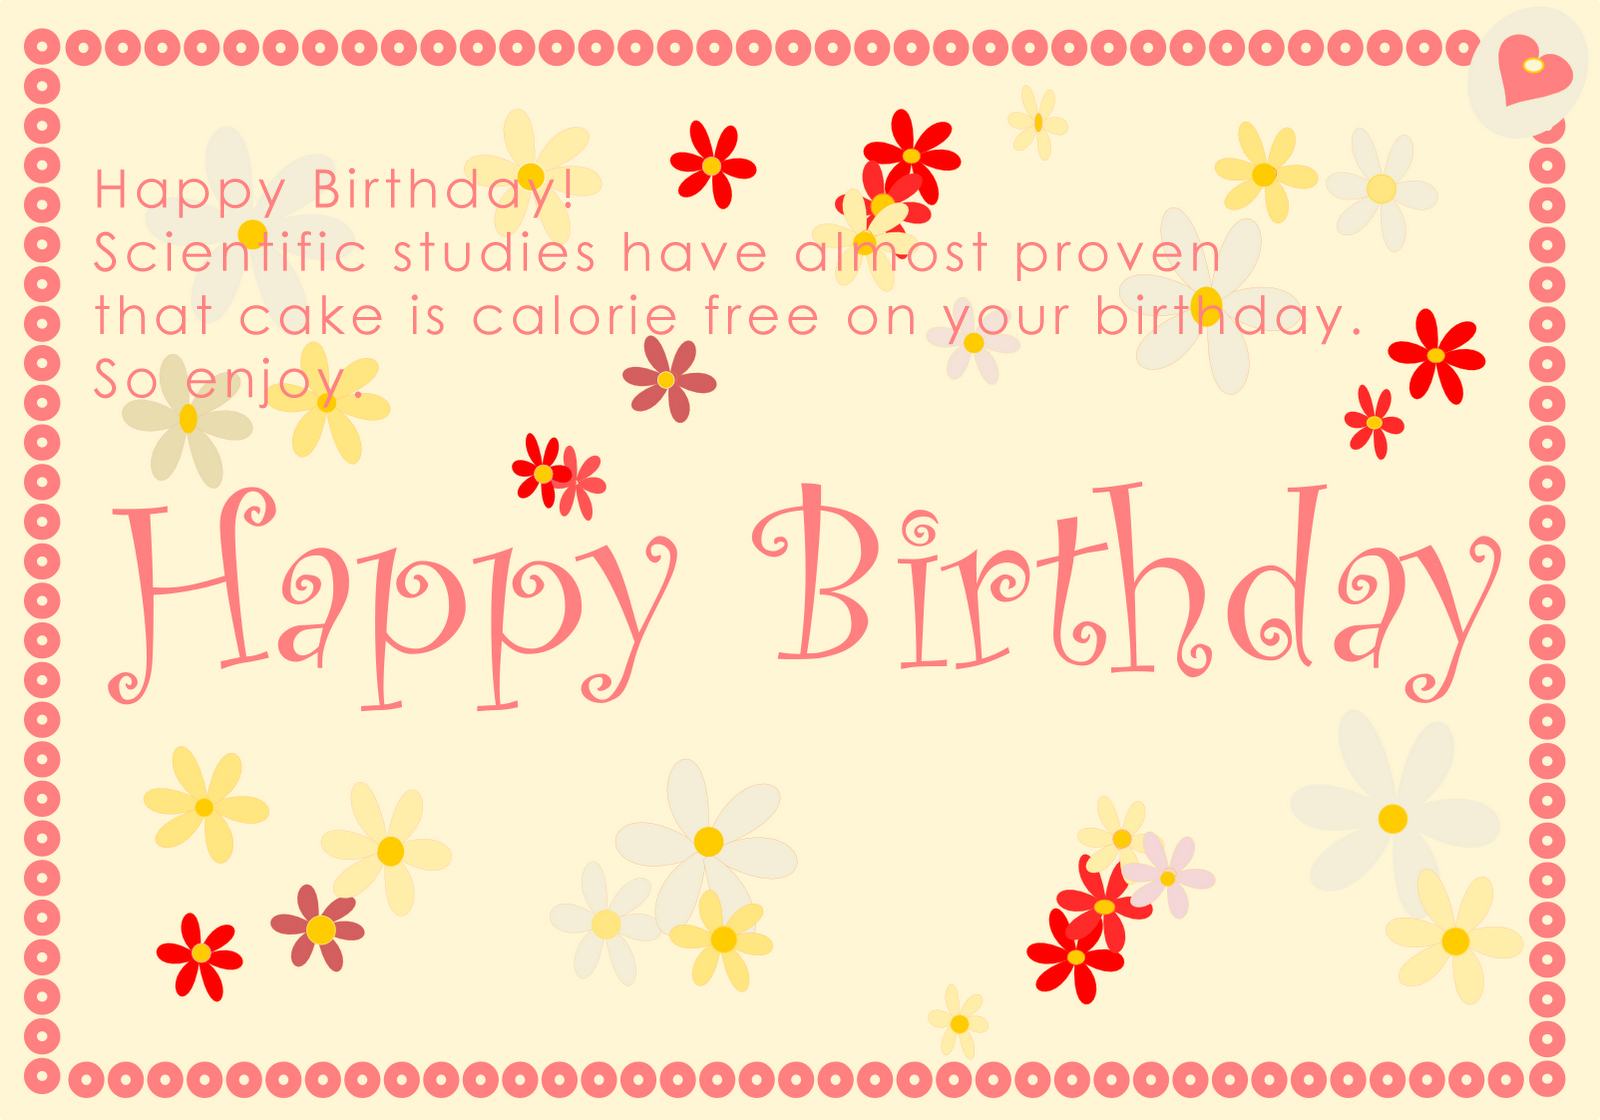 15 Best Birthday Card Messages and Wishes 1Birthday Greetings – Birthday Cards Pics Free